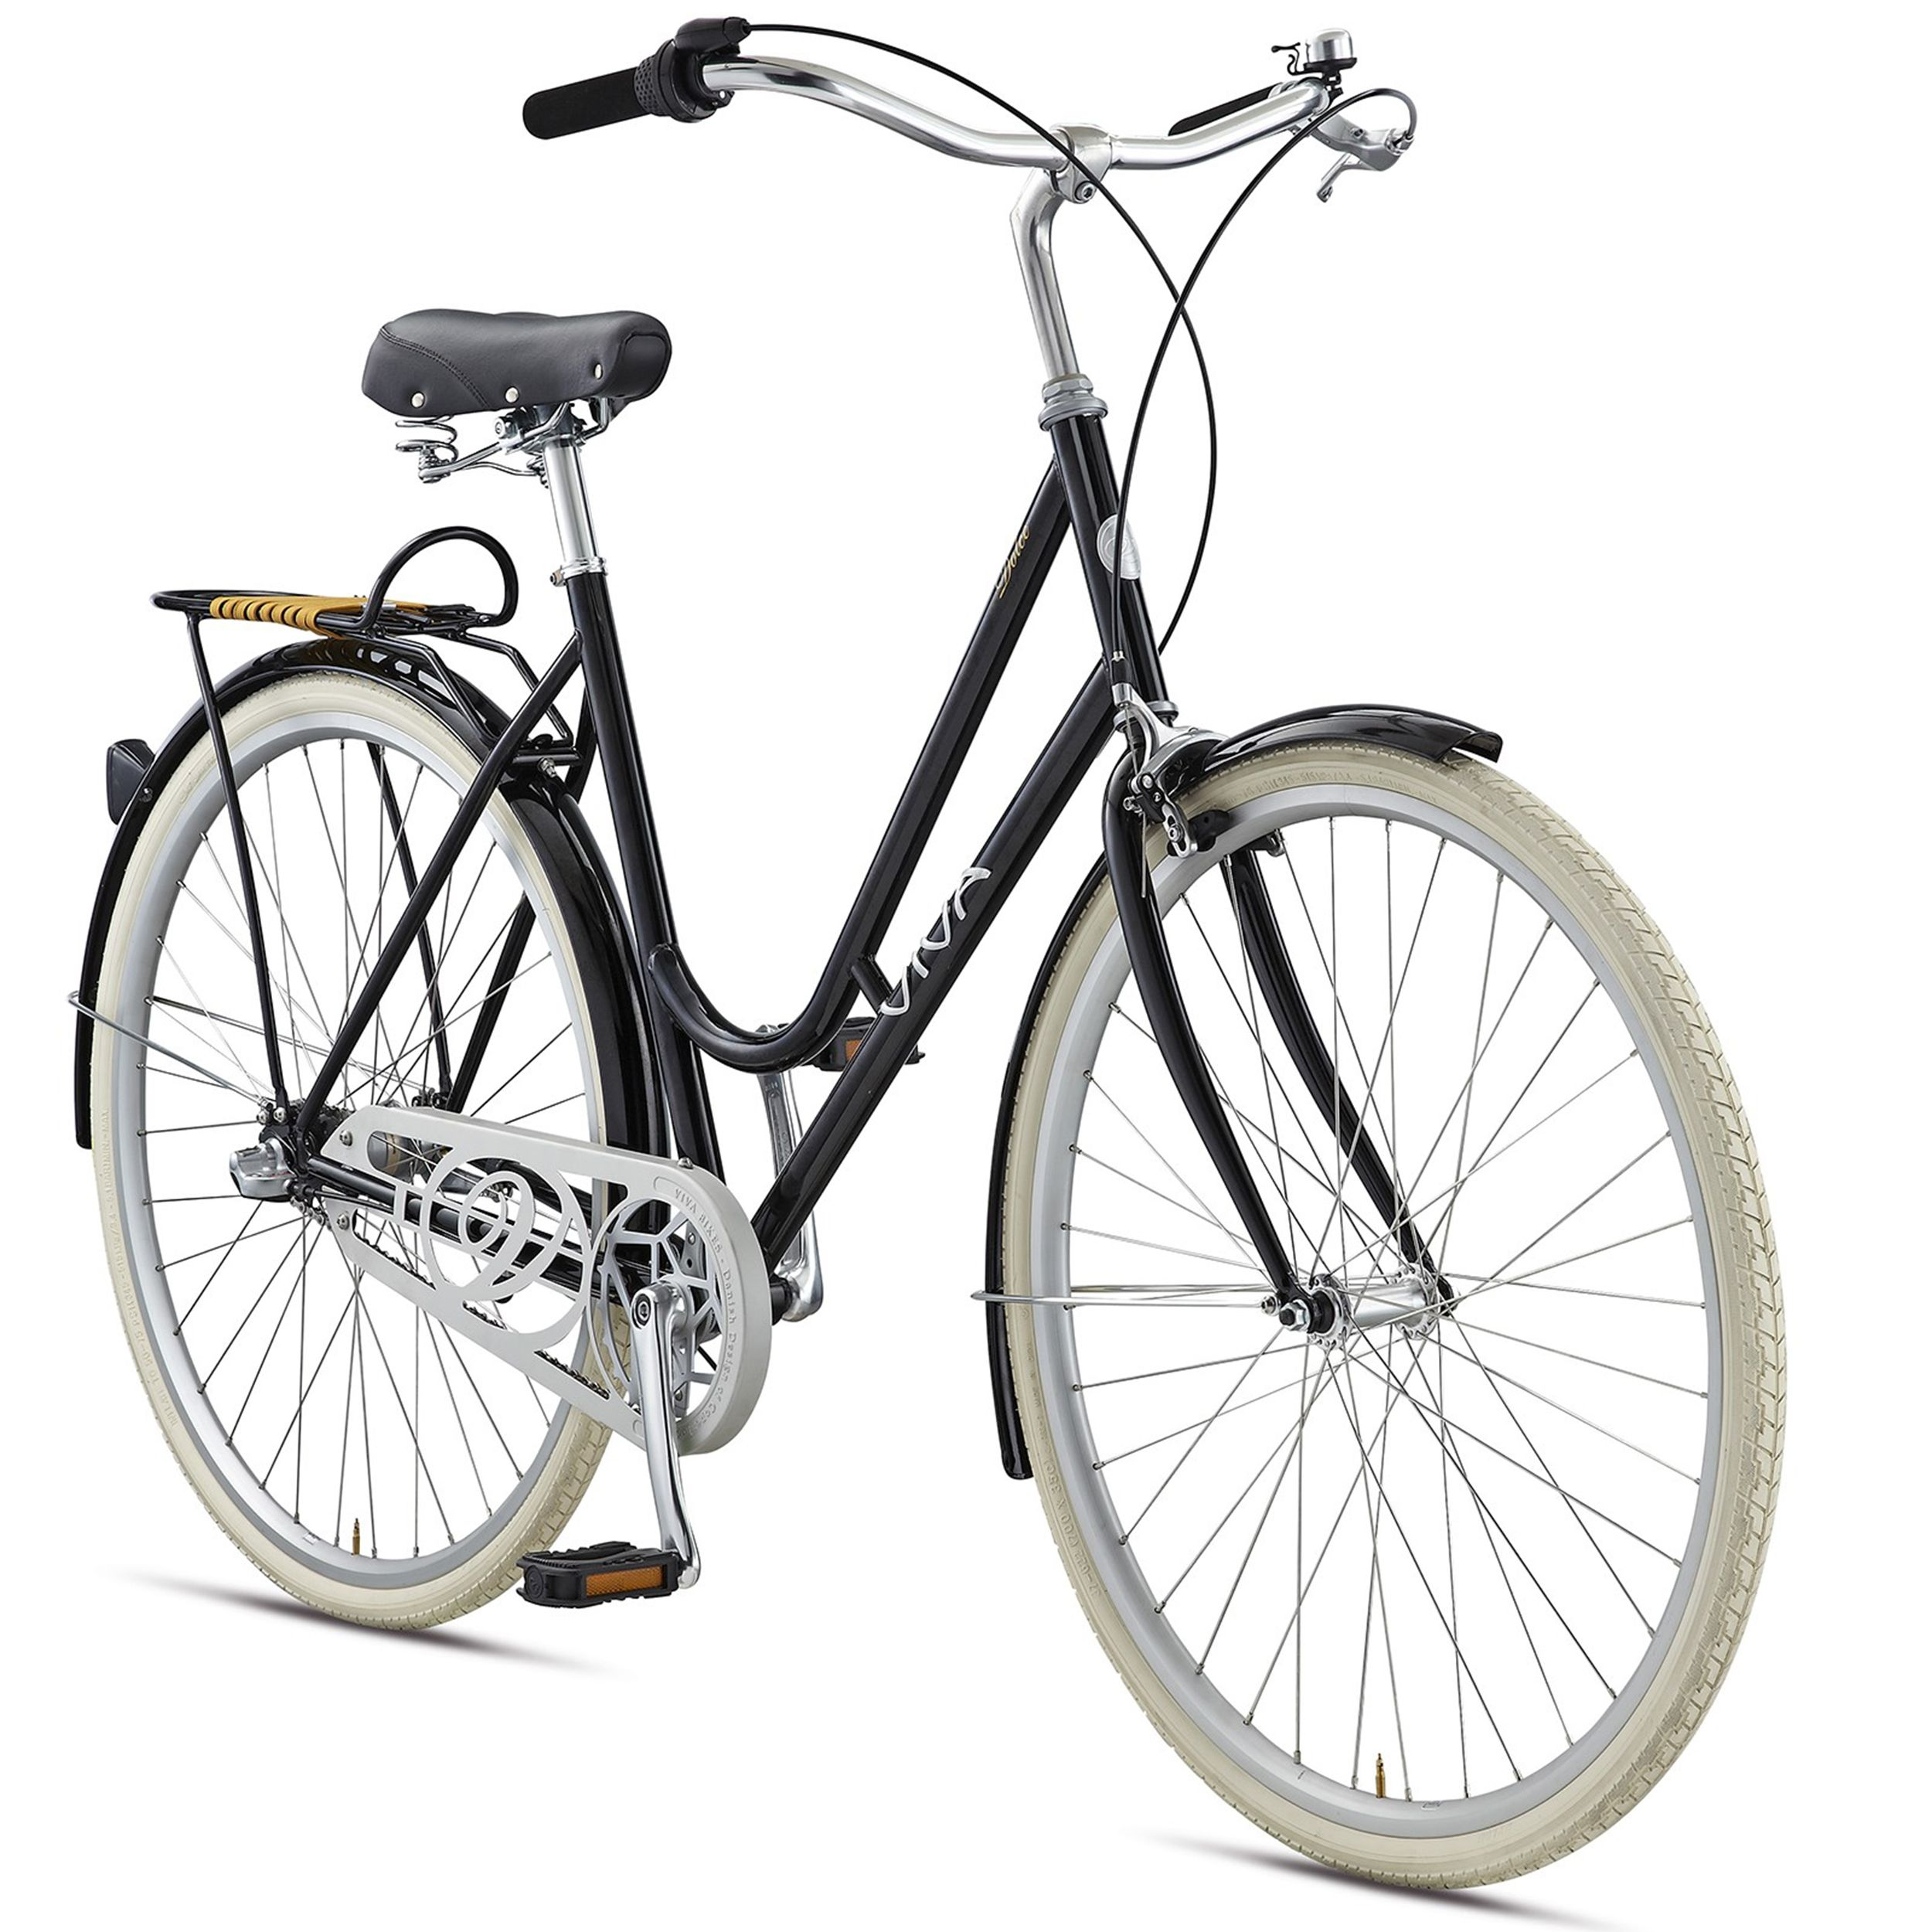 Viva Dolce 3 City Bicycle The Dolce 3 Is A Simple Yet Elegant